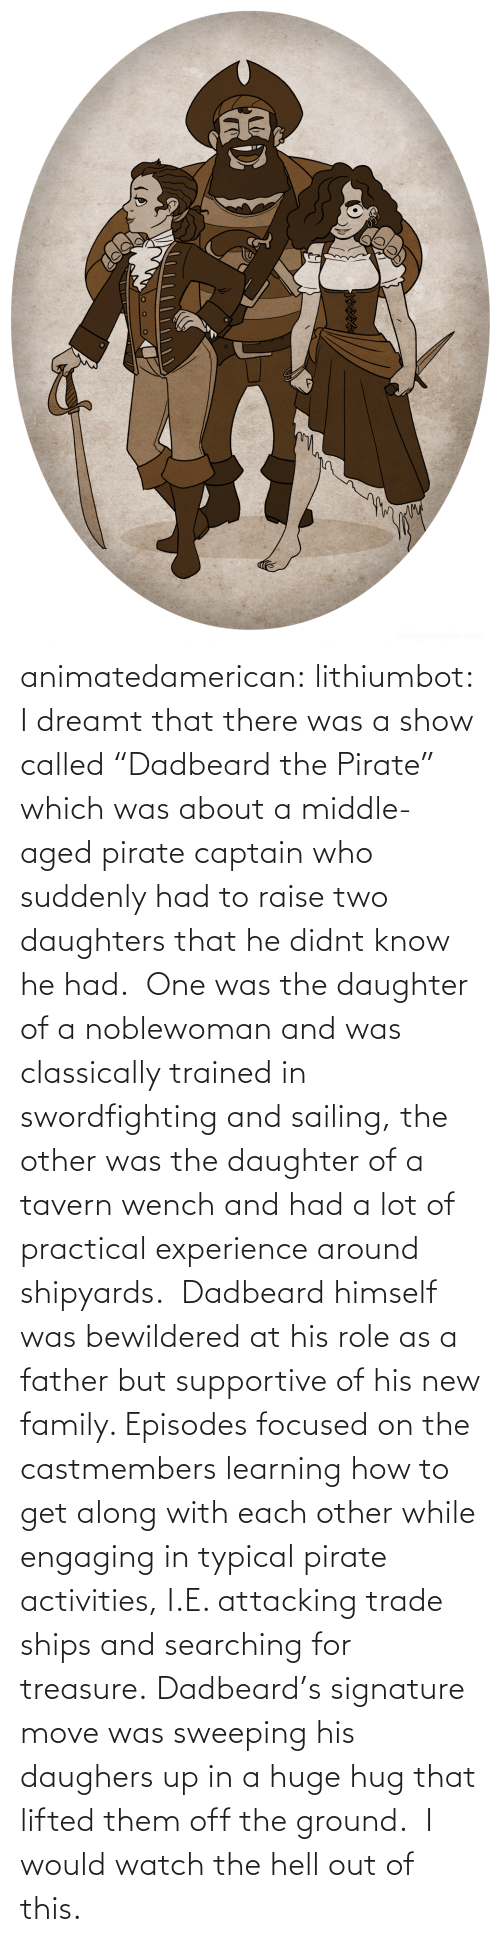 "typical: animatedamerican: lithiumbot:  I dreamt that there was a show called ""Dadbeard the Pirate"" which was about a middle-aged pirate captain who suddenly had to raise two daughters that he didnt know he had.  One was the daughter of a noblewoman and was classically trained in swordfighting and sailing, the other was the daughter of a tavern wench and had a lot of practical experience around shipyards.  Dadbeard himself was bewildered at his role as a father but supportive of his new family. Episodes focused on the castmembers learning how to get along with each other while engaging in typical pirate activities, I.E. attacking trade ships and searching for treasure. Dadbeard's signature move was sweeping his daughers up in a huge hug that lifted them off the ground.   I would watch the hell out of this."